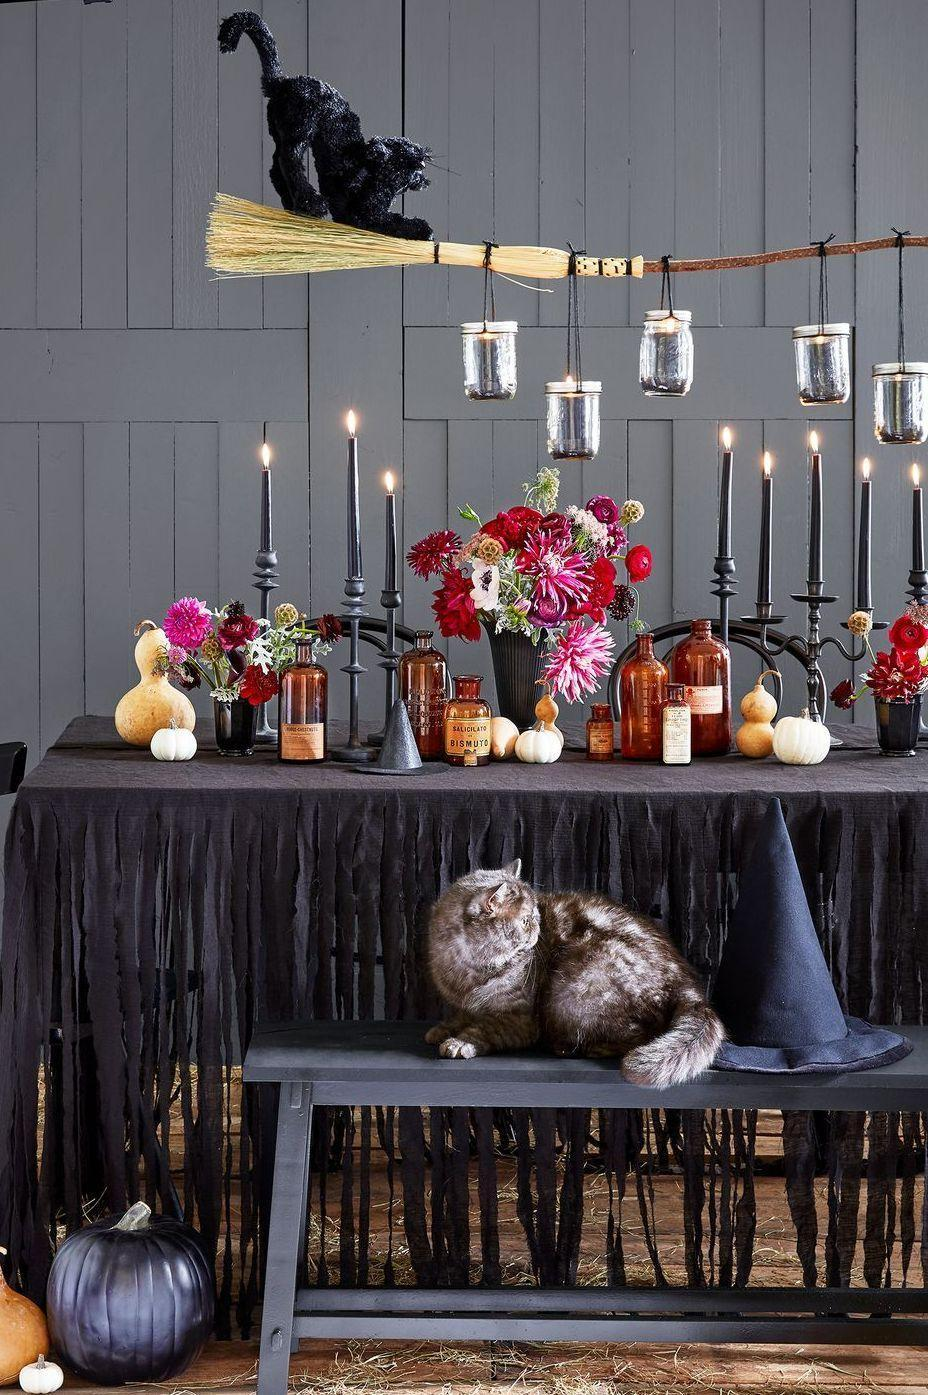 """<p>When it comes to <a href=""""https://www.goodhousekeeping.com/holidays/halloween-ideas/g421/halloween-decorating-ideas/"""" rel=""""nofollow noopener"""" target=""""_blank"""" data-ylk=""""slk:Halloween decorating ideas"""" class=""""link rapid-noclick-resp"""">Halloween decorating ideas</a>, nothing is off limits. The more, the better is the way to go. If that's your style, the best place to start is with your Halloween table decor. Your dining table is the blank canvas you need to express your creativity, whether it's with <a href=""""https://www.goodhousekeeping.com/holidays/halloween-ideas/g1714/no-carve-pumpkin-decorating/"""" rel=""""nofollow noopener"""" target=""""_blank"""" data-ylk=""""slk:loads of pumpkins"""" class=""""link rapid-noclick-resp"""">loads of pumpkins</a>, autumn flowers and stylish candlesticks, or on the opposite end of the Halloween decor spectrum, a ghoulish setup filled with spider webs, skulls and ghosts. </p><p>Browse these 40 creative Halloween decor ideas to bring your table to life. These <a href=""""https://www.goodhousekeeping.com/holidays/halloween-ideas/g421/halloween-decorating-ideas/"""" rel=""""nofollow noopener"""" target=""""_blank"""" data-ylk=""""slk:one-of-a-kind DIY pointers"""" class=""""link rapid-noclick-resp"""">one-of-a-kind DIY pointers</a> are full of inspiration to make your <a href=""""https://www.goodhousekeeping.com/holidays/halloween-ideas/g565/halloween-party-ideas/"""" rel=""""nofollow noopener"""" target=""""_blank"""" data-ylk=""""slk:Halloween celebration"""" class=""""link rapid-noclick-resp"""">Halloween celebration</a> gathered around a table a fun-filled one.<br></p>"""